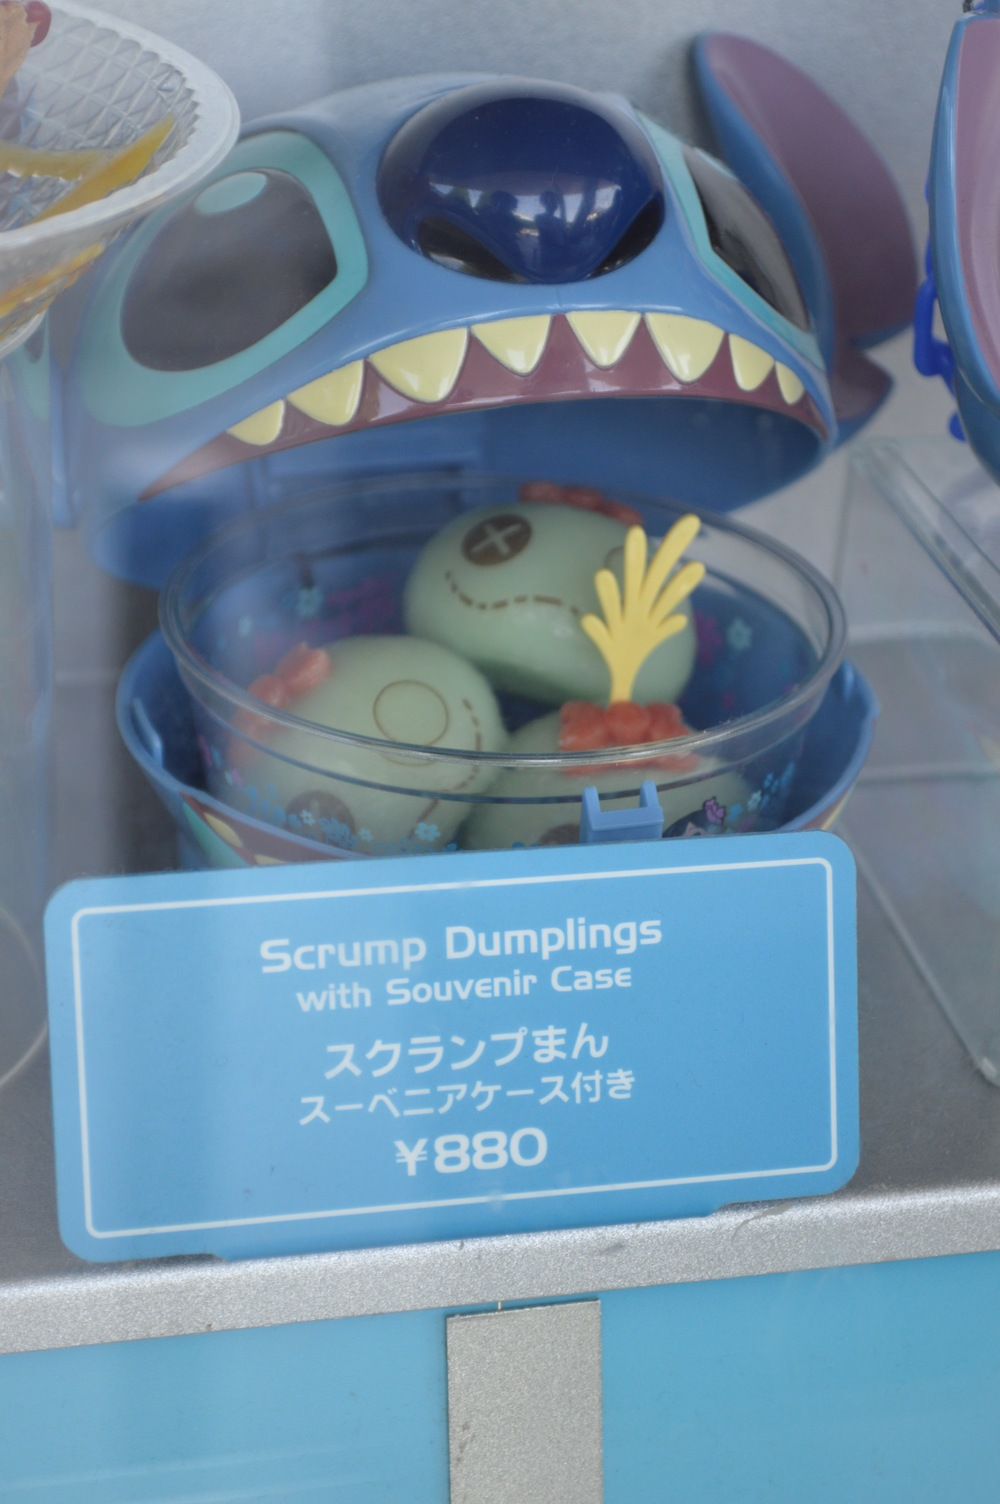 Scrump Dumplings with Souvenir Case